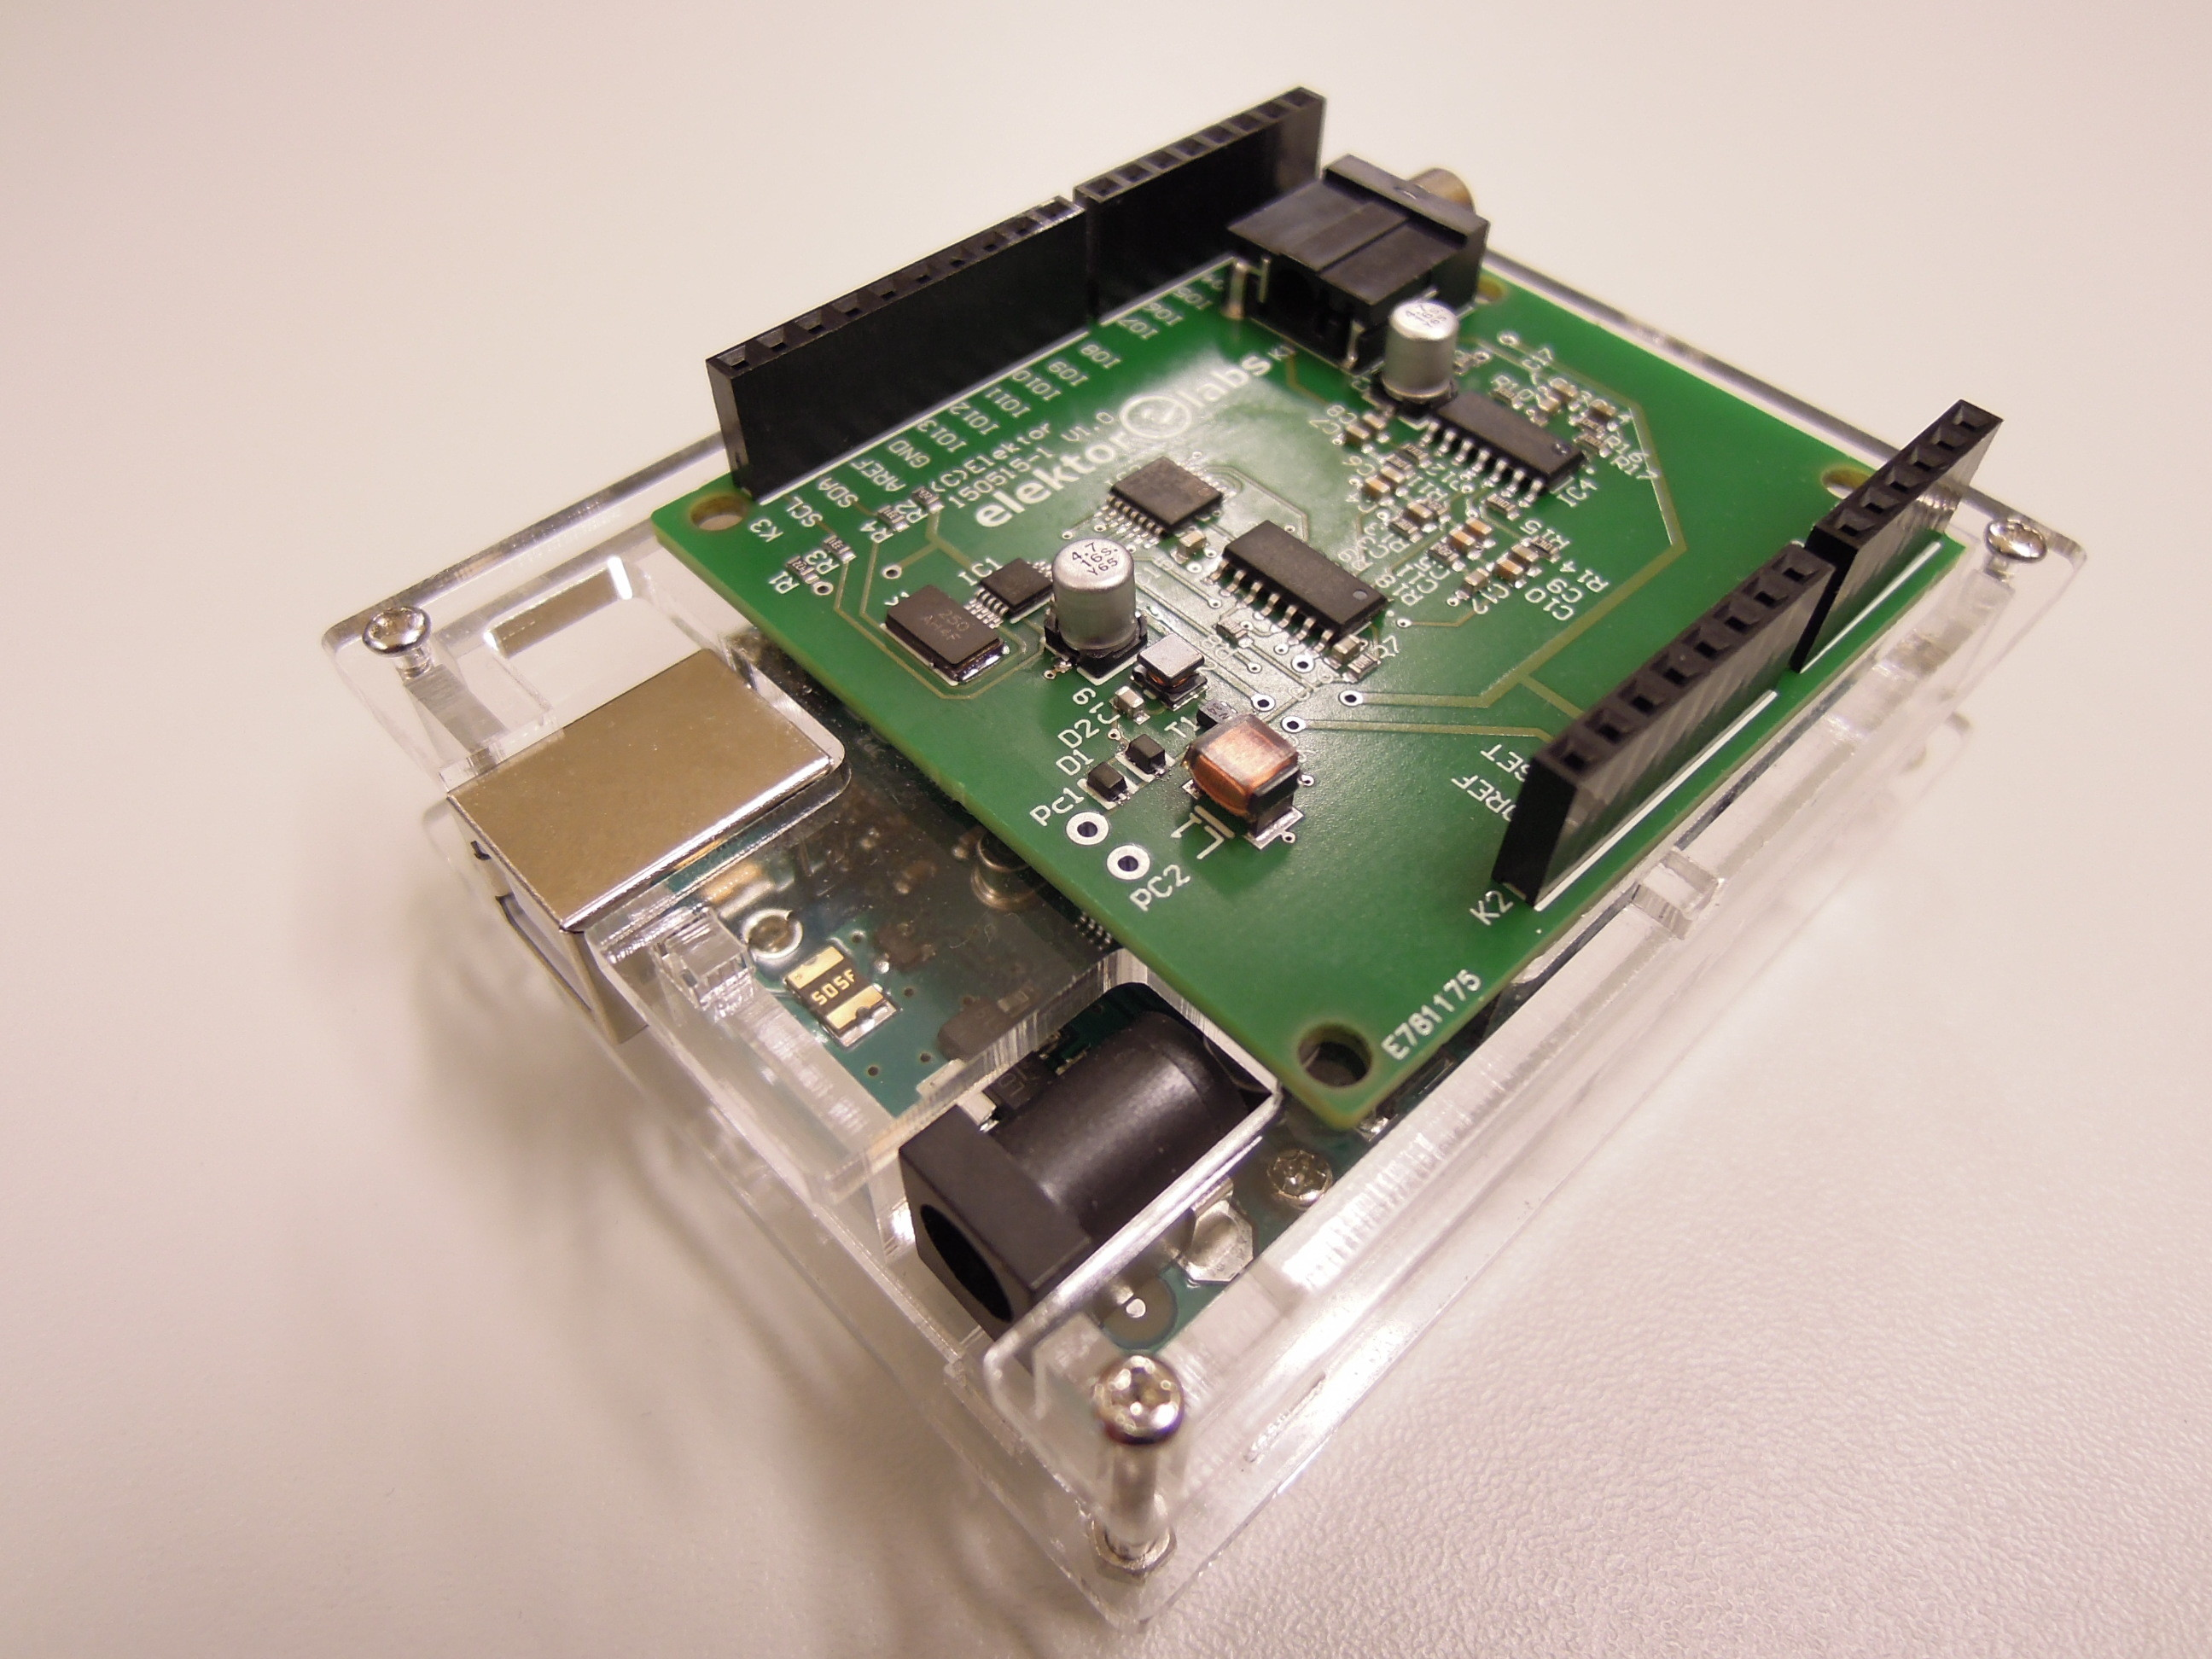 Software defined radio sdr shield for arduino